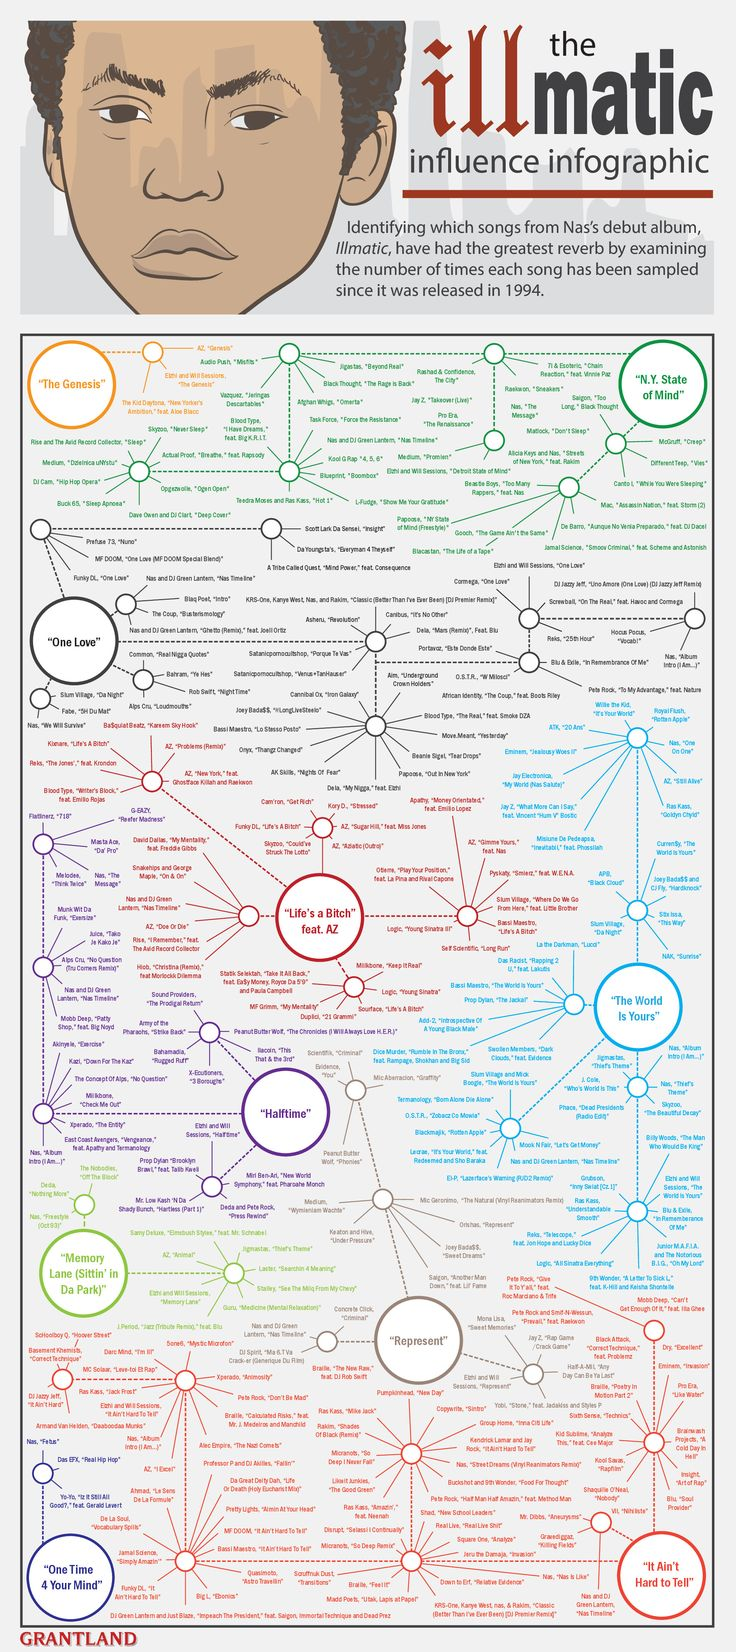 illmatic-infographic-final-red.jpg (1927×4327)